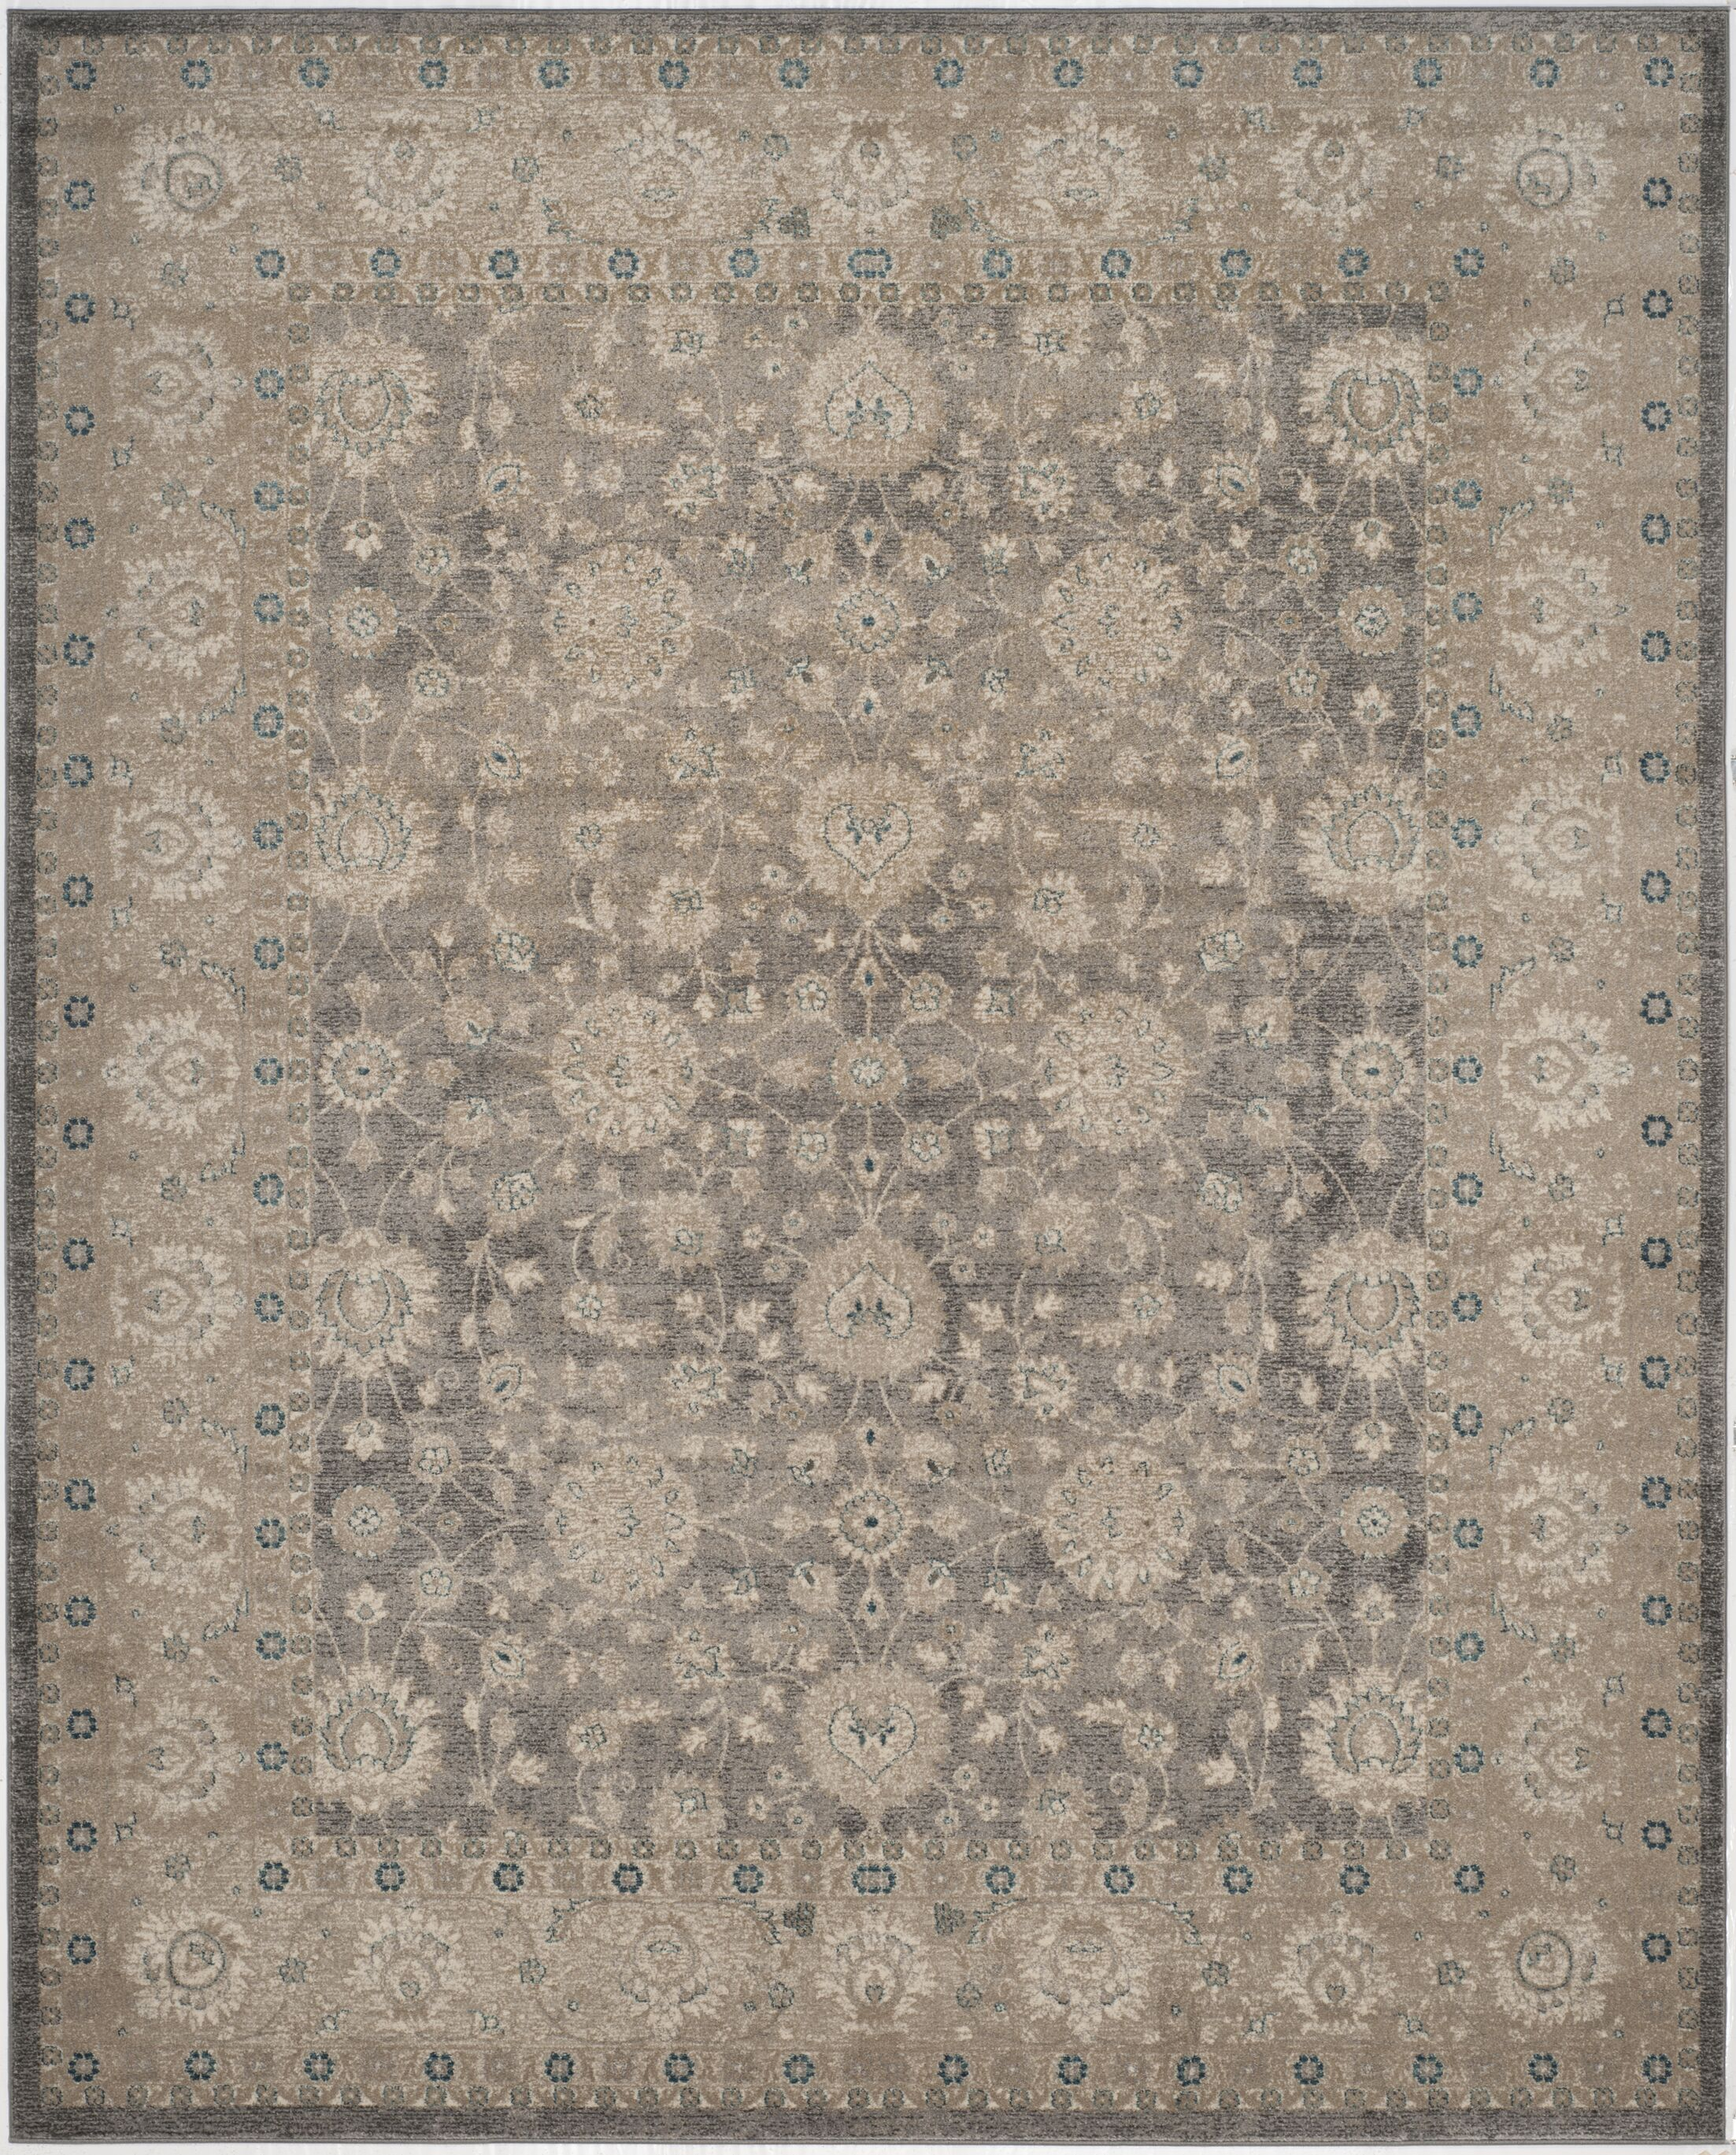 Sofia Power Loom Synthetic Beige/Gray Area Rug Rug Size: Rectangle 12' x 18'